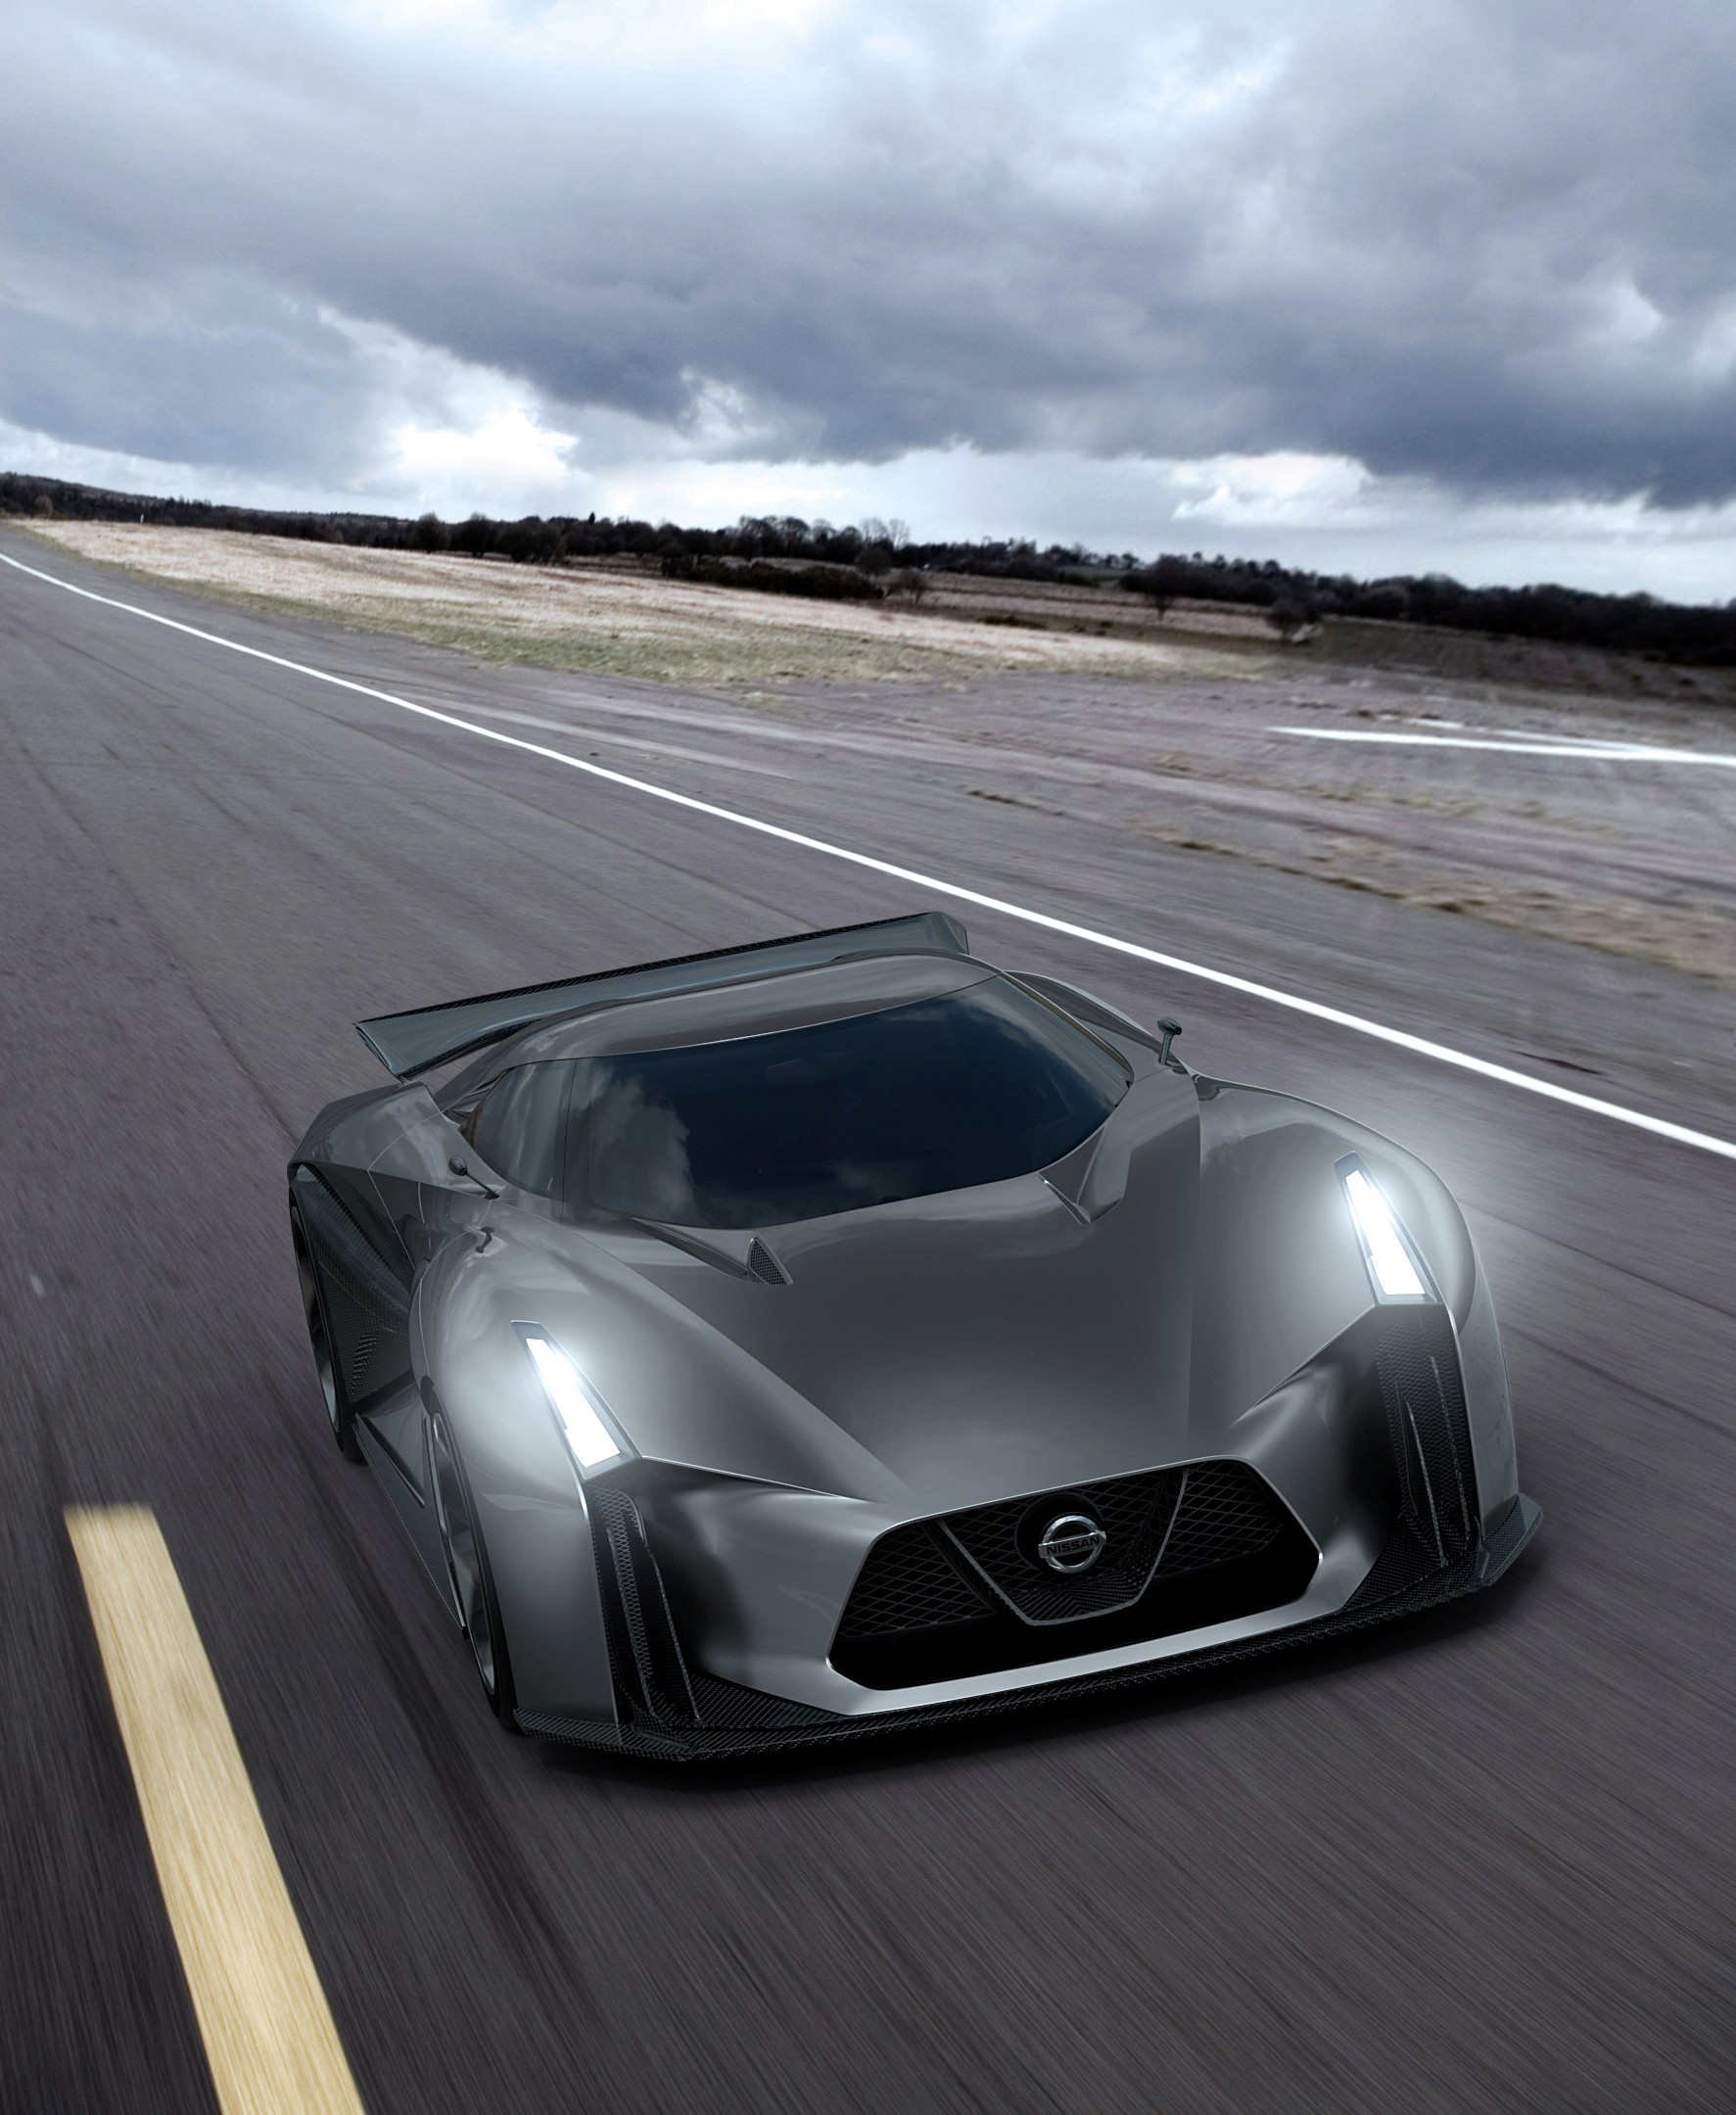 2014_Nissan_Concept_2020_Vision_Gran_Turismo_008_8359.jpg